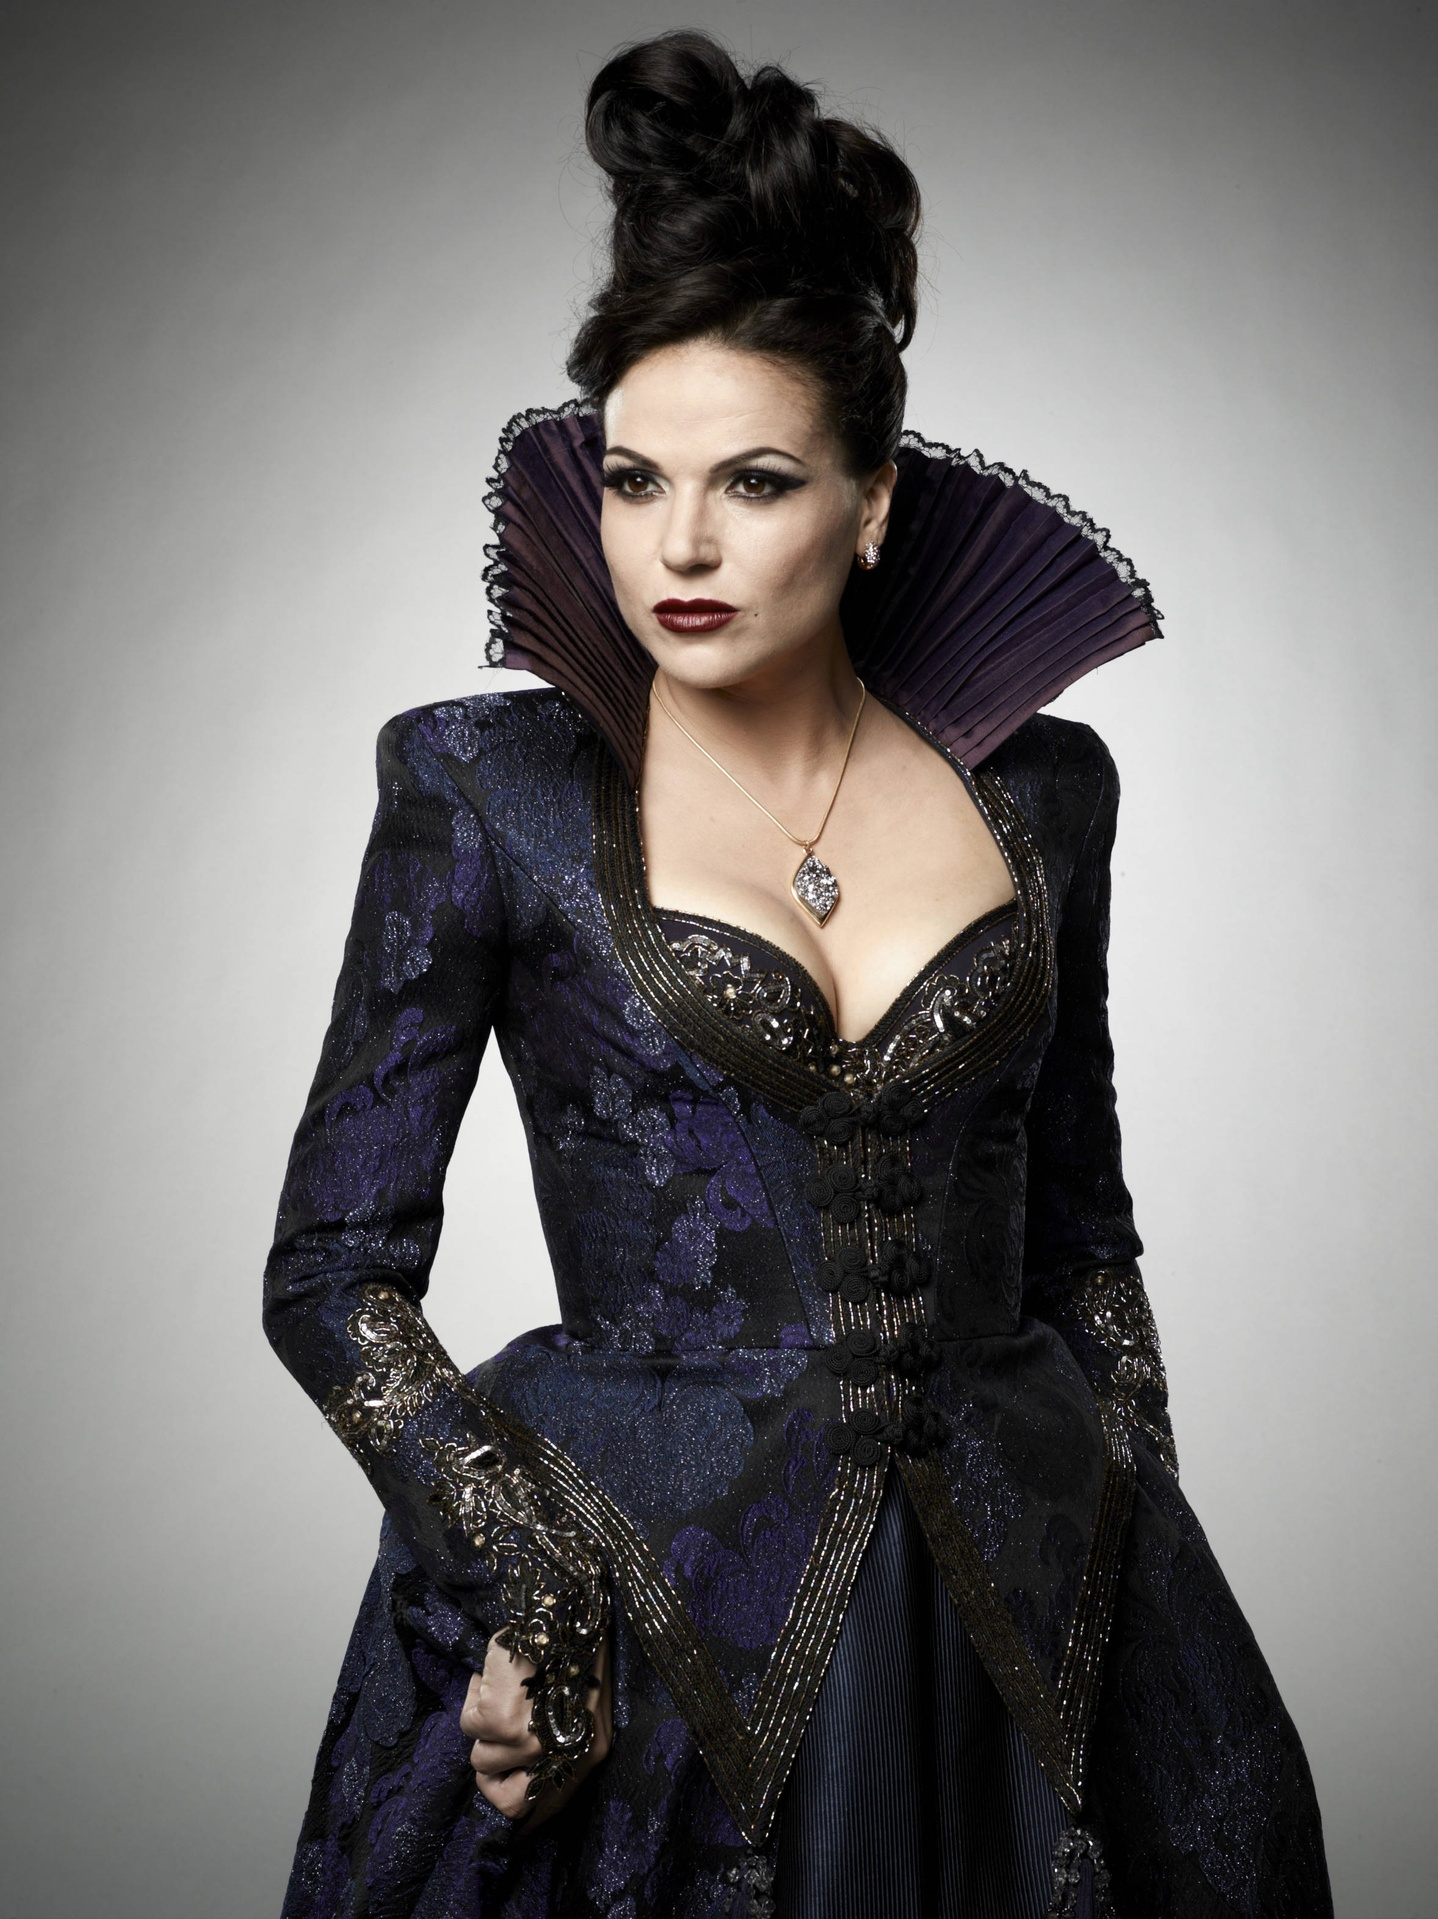 Regina Once Upon A Time 35320806 2355 3143 1 Jpg